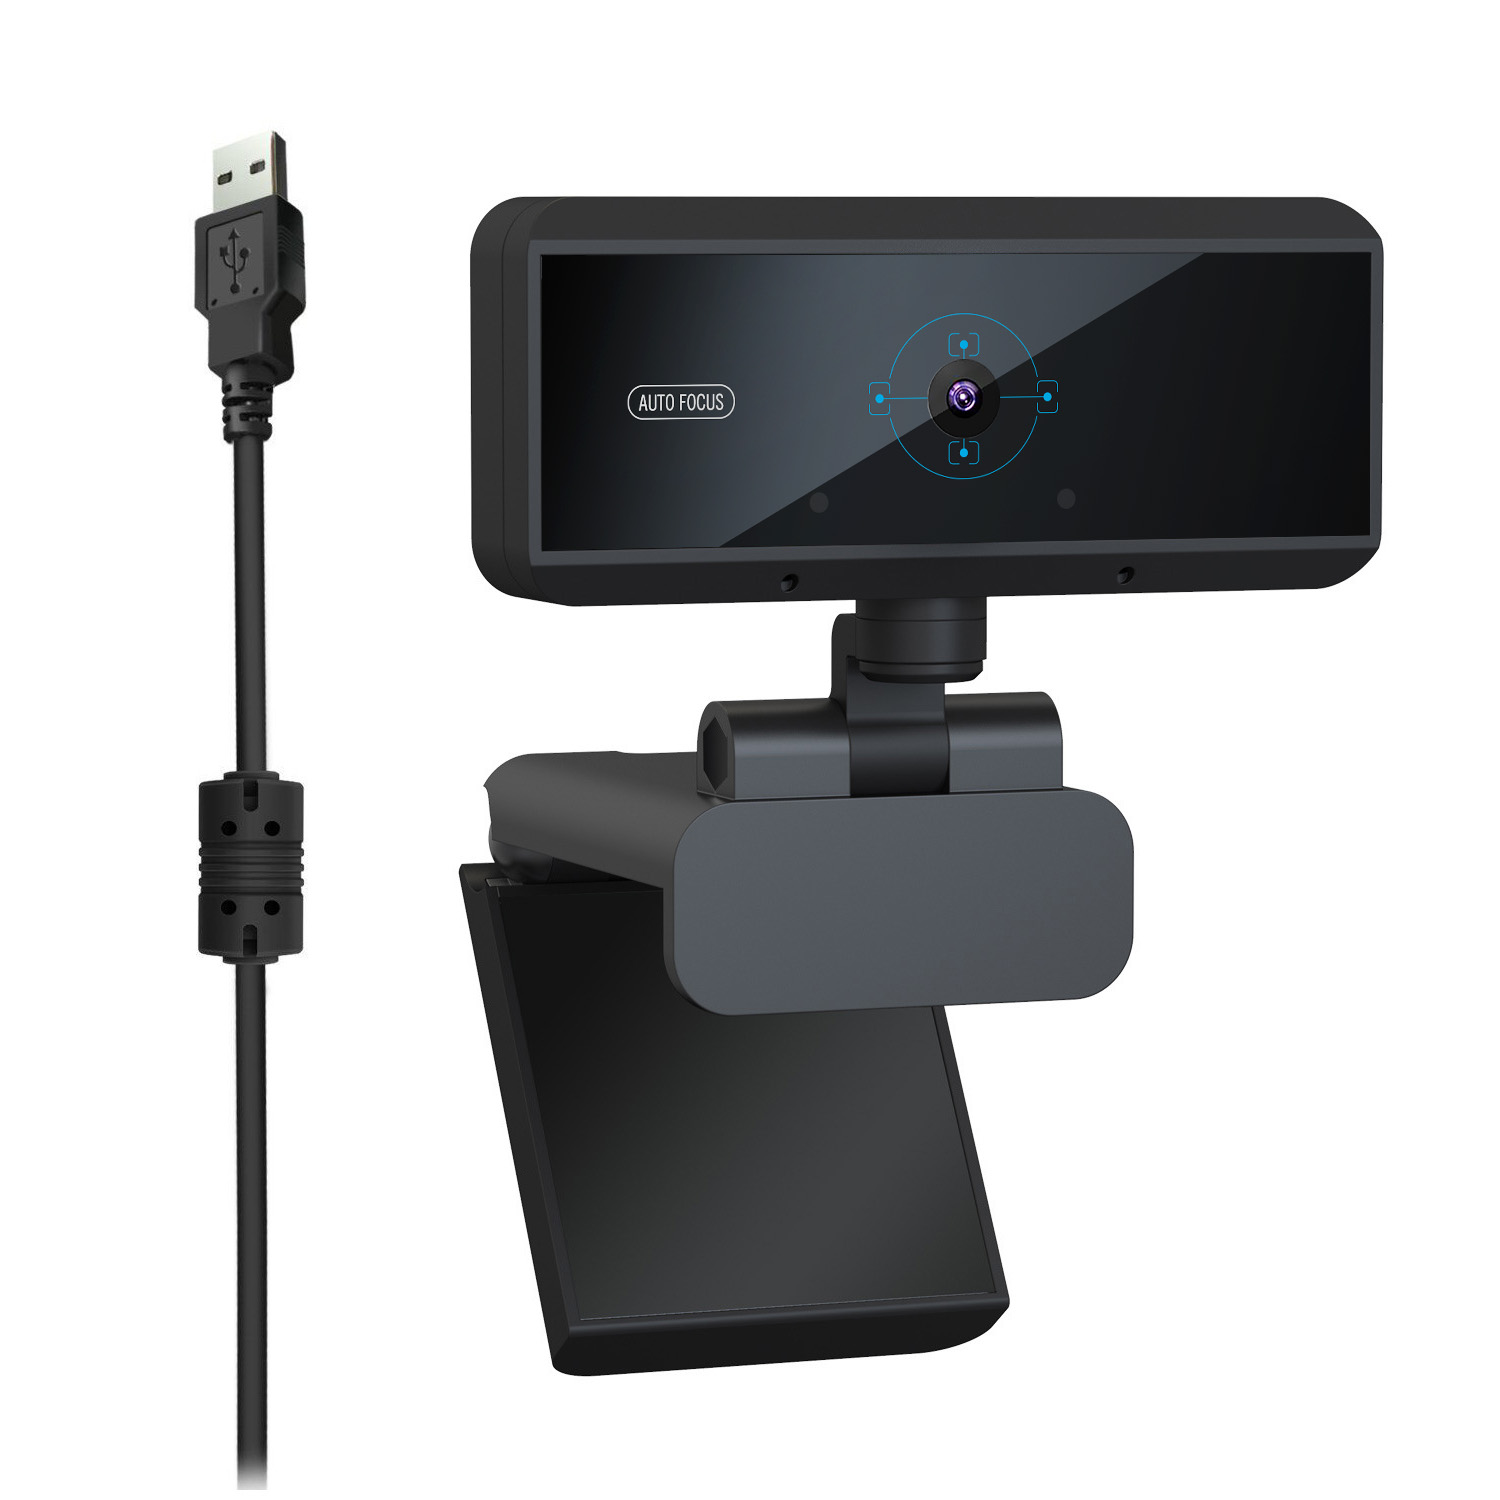 HXSJ HD 1080P Webcam Built-in Microphone Auto Focus High-end Video Call Computer Peripheral Web Camera for PC Laptop